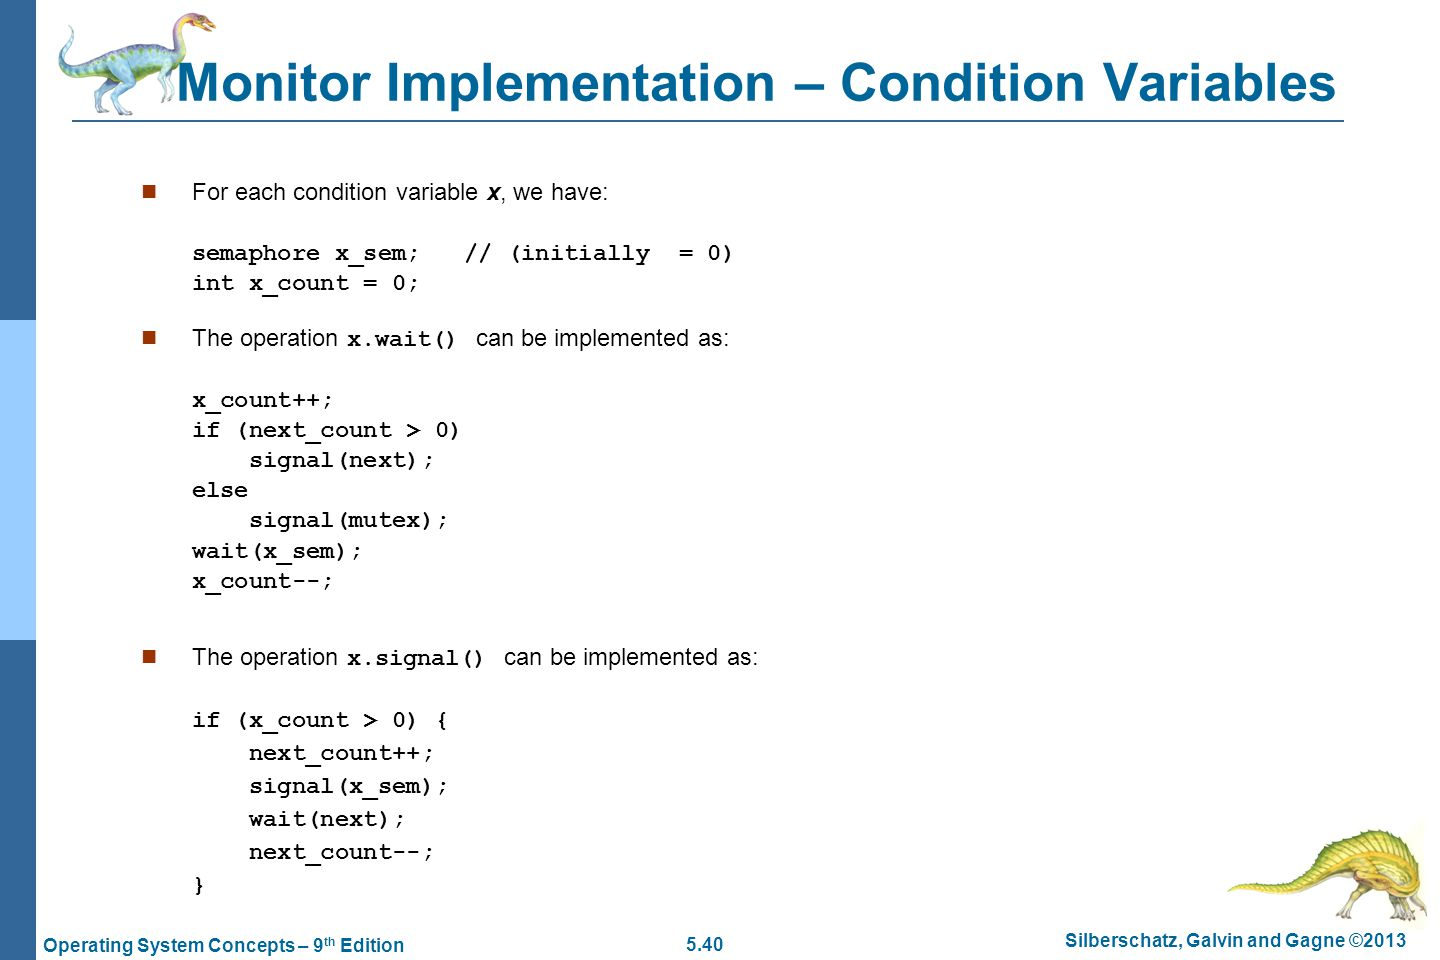 5.40 Silberschatz, Galvin and Gagne ©2013 Operating System Concepts – 9 th Edition Monitor Implementation – Condition Variables For each condition variable x, we have: semaphore x_sem; // (initially = 0) int x_count = 0; The operation x.wait() can be implemented as: x_count++; if (next_count > 0) signal(next); else signal(mutex); wait(x_sem); x_count--; The operation x.signal() can be implemented as: if (x_count > 0) { next_count++; signal(x_sem); wait(next); next_count--; }